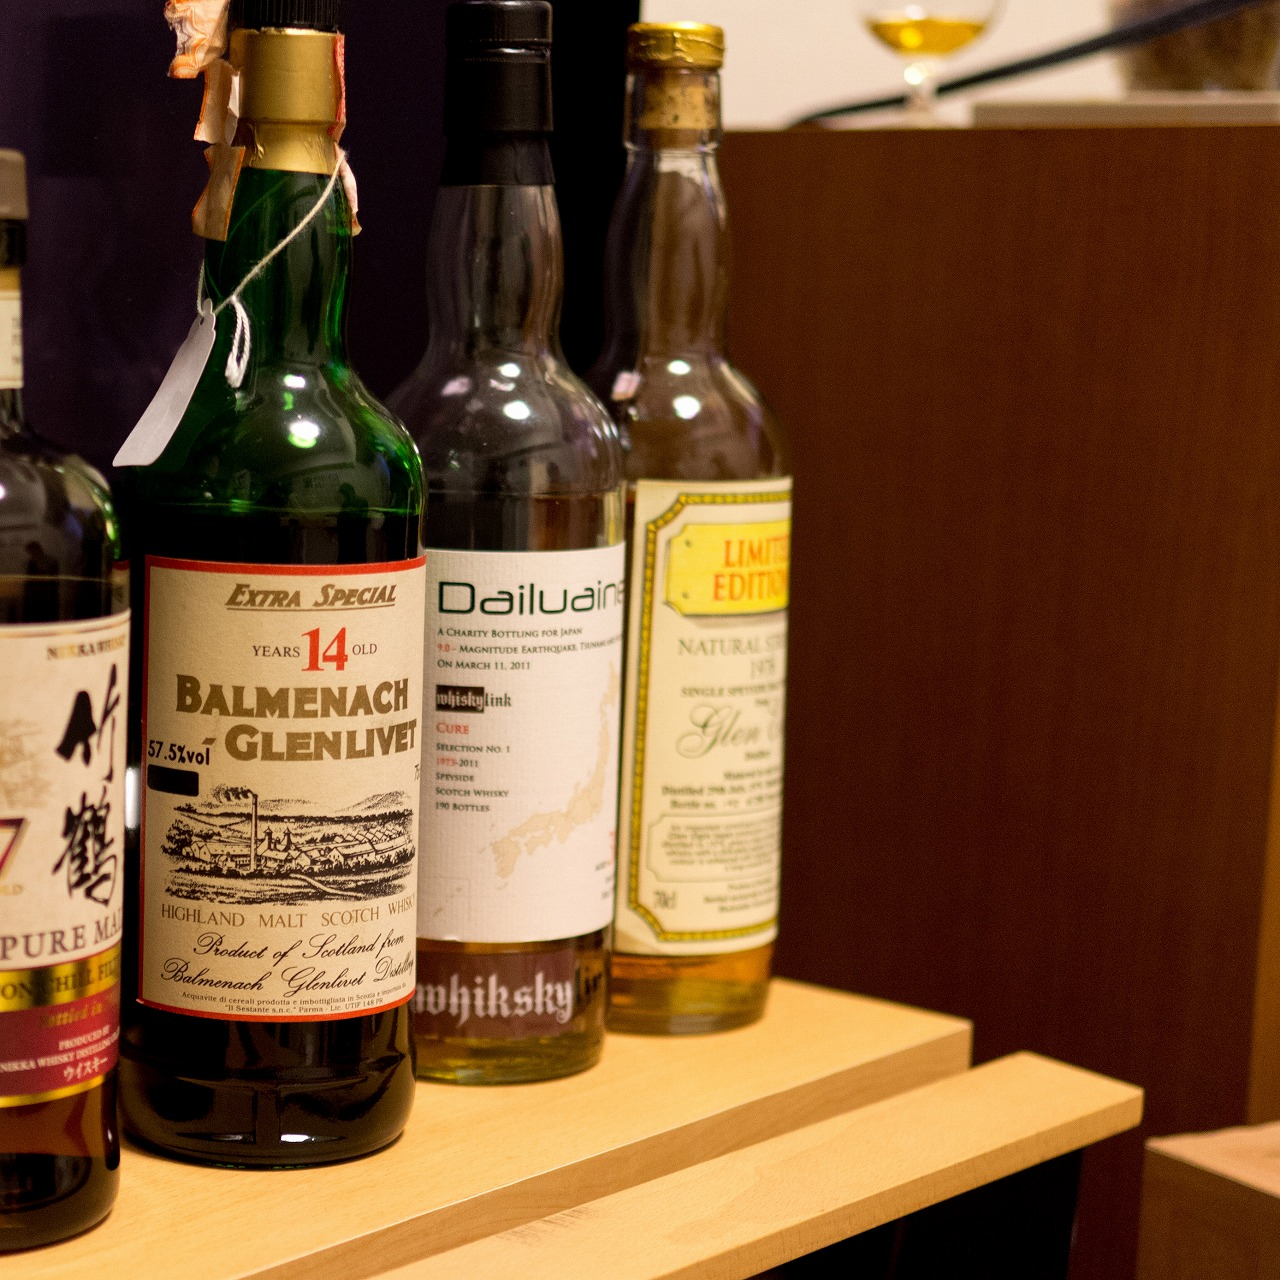 バルメナック-グレンリベット Balmenach-Glenlivet 14yo (57.5%, OB for Sestante, early 1970's) c1972